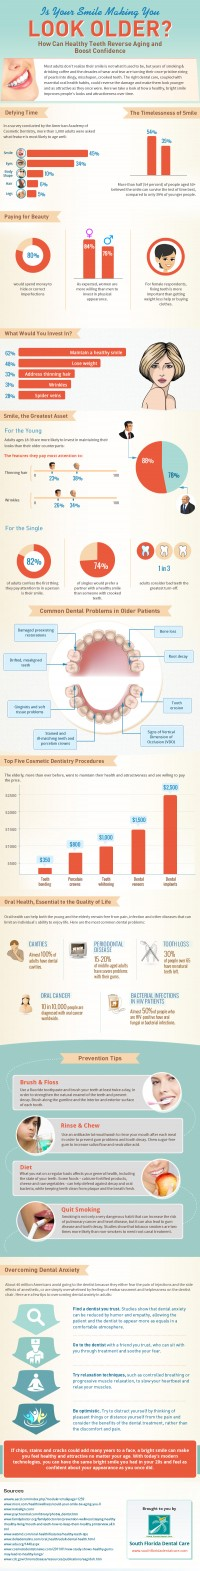 Is Your Smile Making You Look Older? | South Florida Dental Care